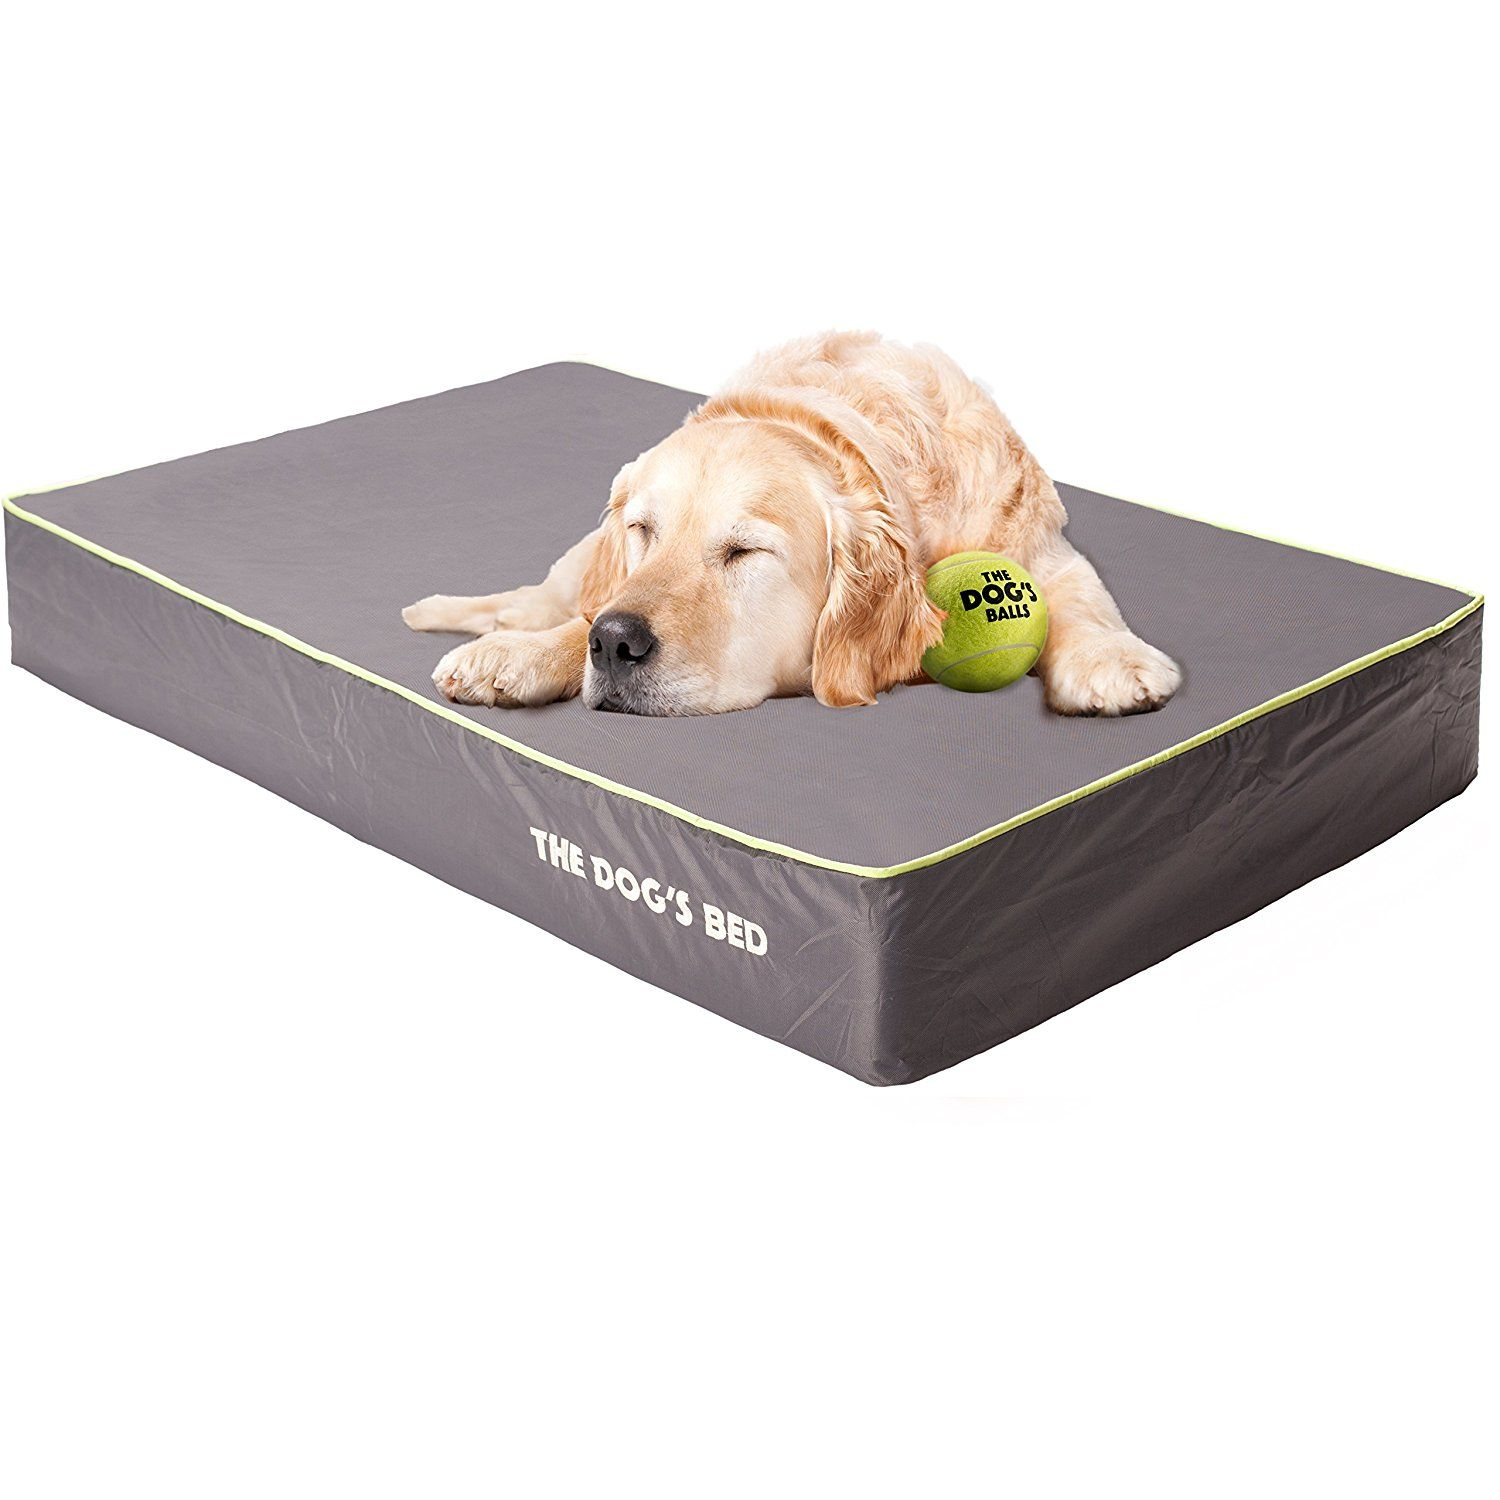 Waterproof Washable Dog Beds (Reviewed March 2020) Buyer's